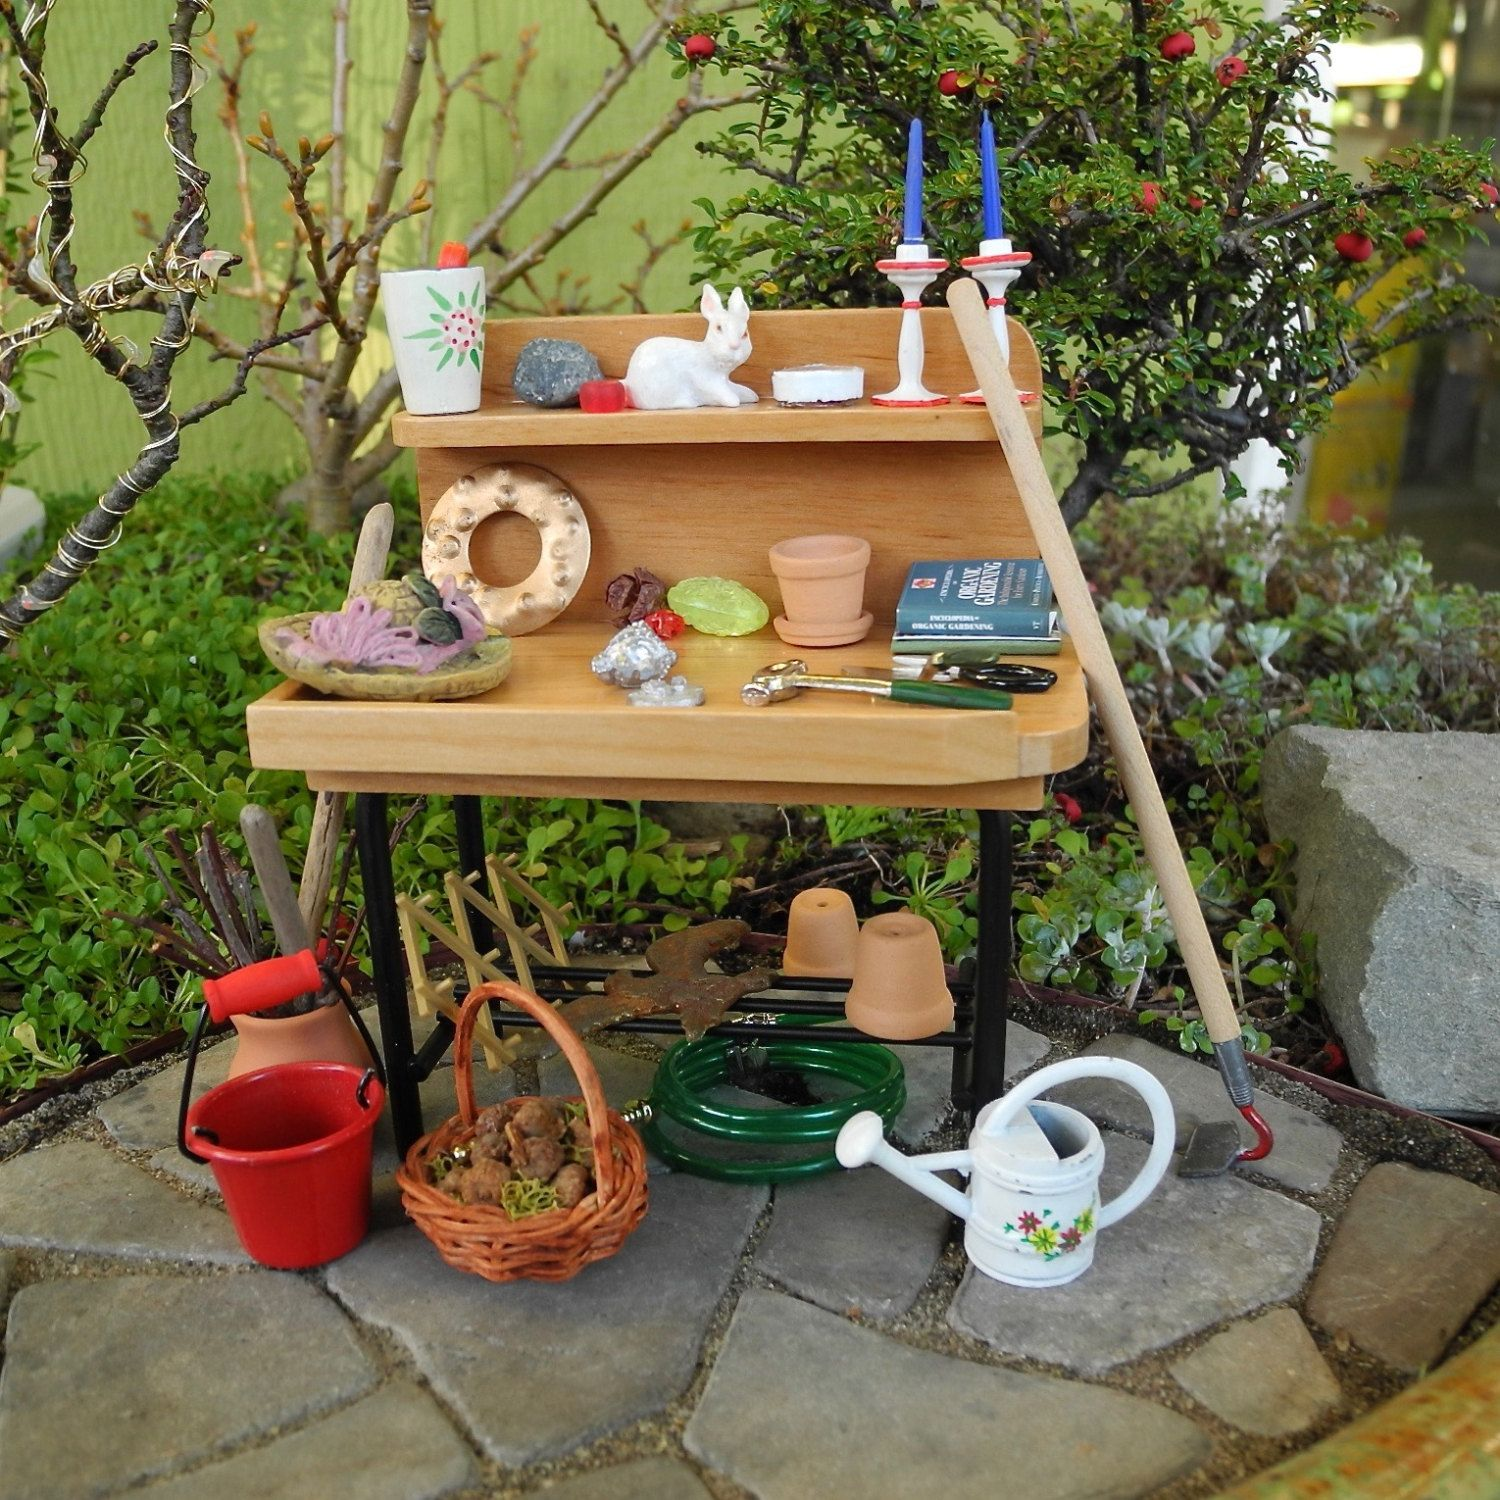 Surprising Miniature Garden Potting Bench Complete With Tools And Ncnpc Chair Design For Home Ncnpcorg